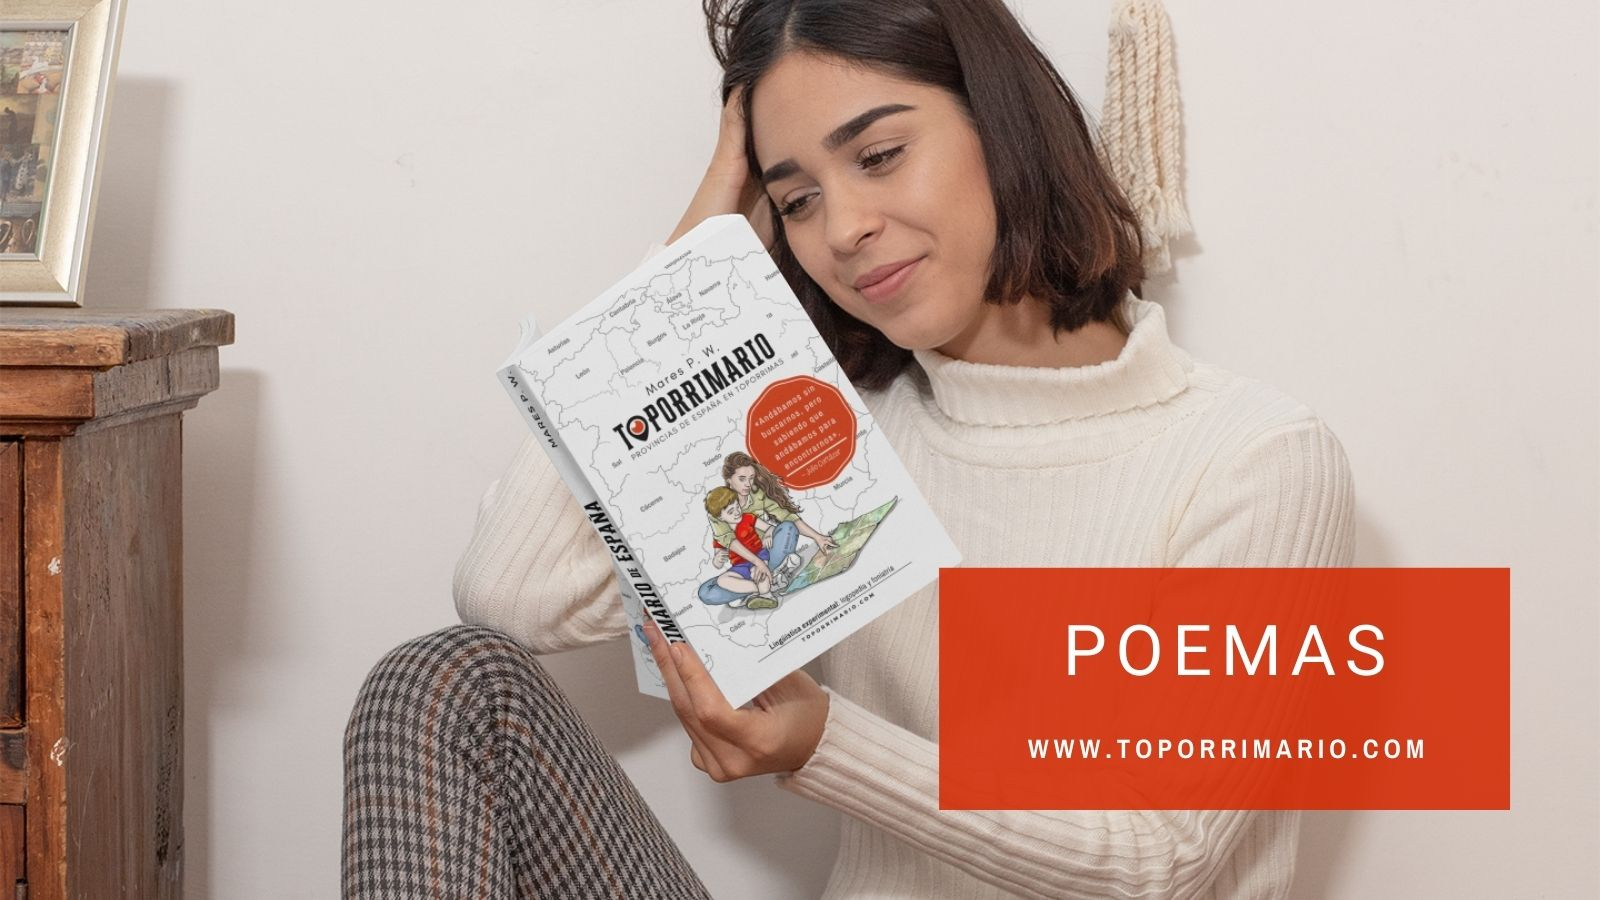 List of 50 Poems